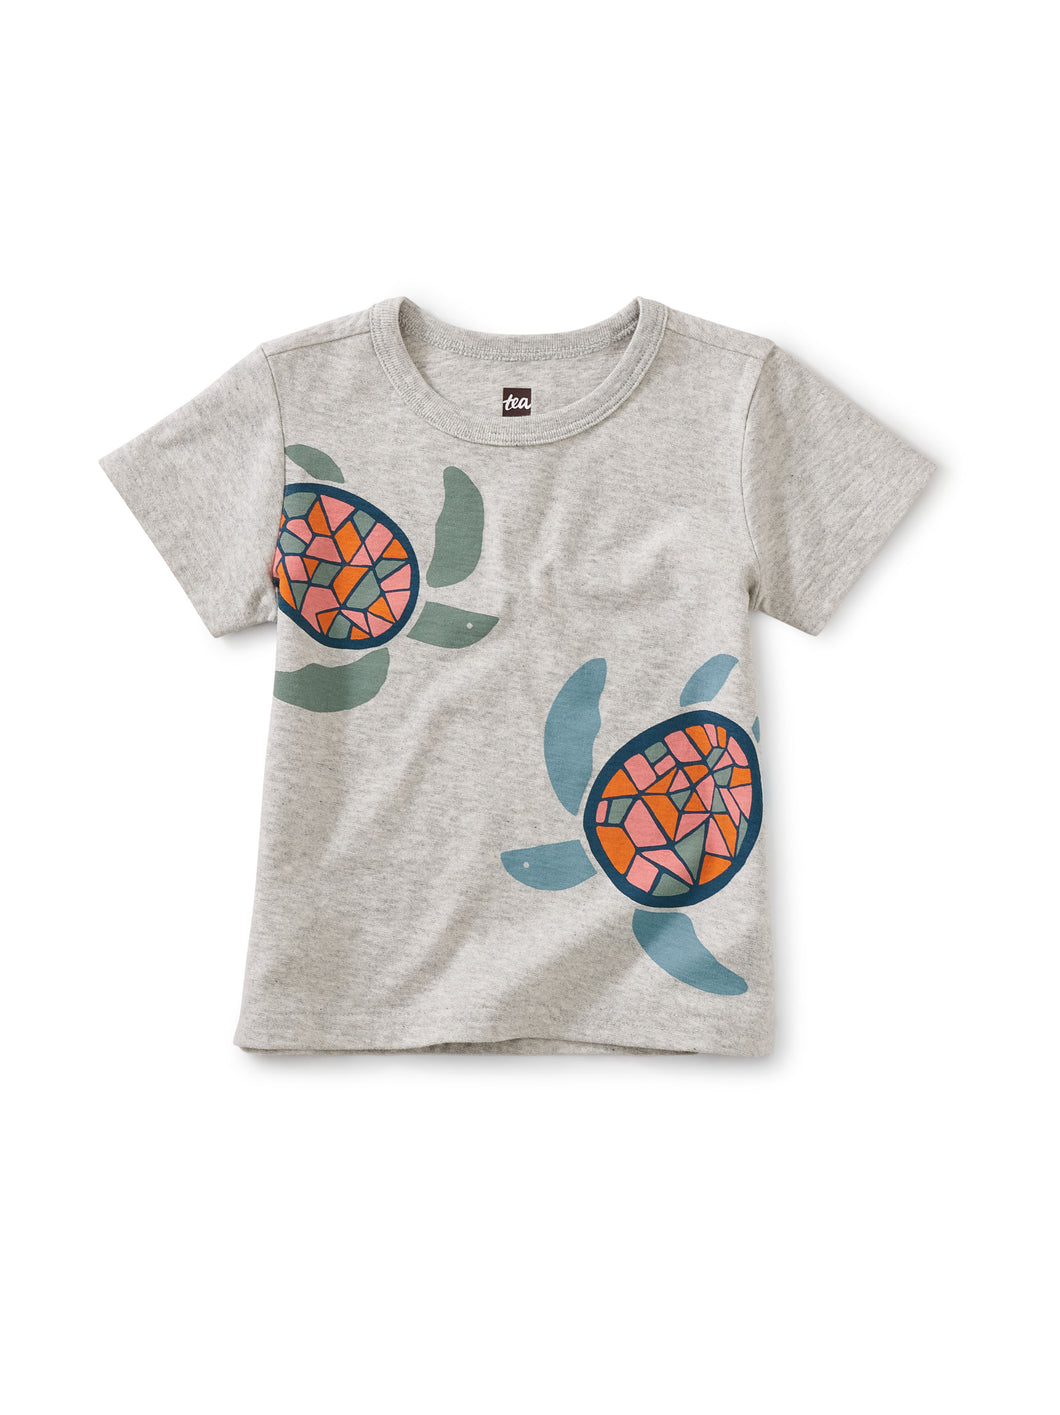 Tea Sea Turtles Tee